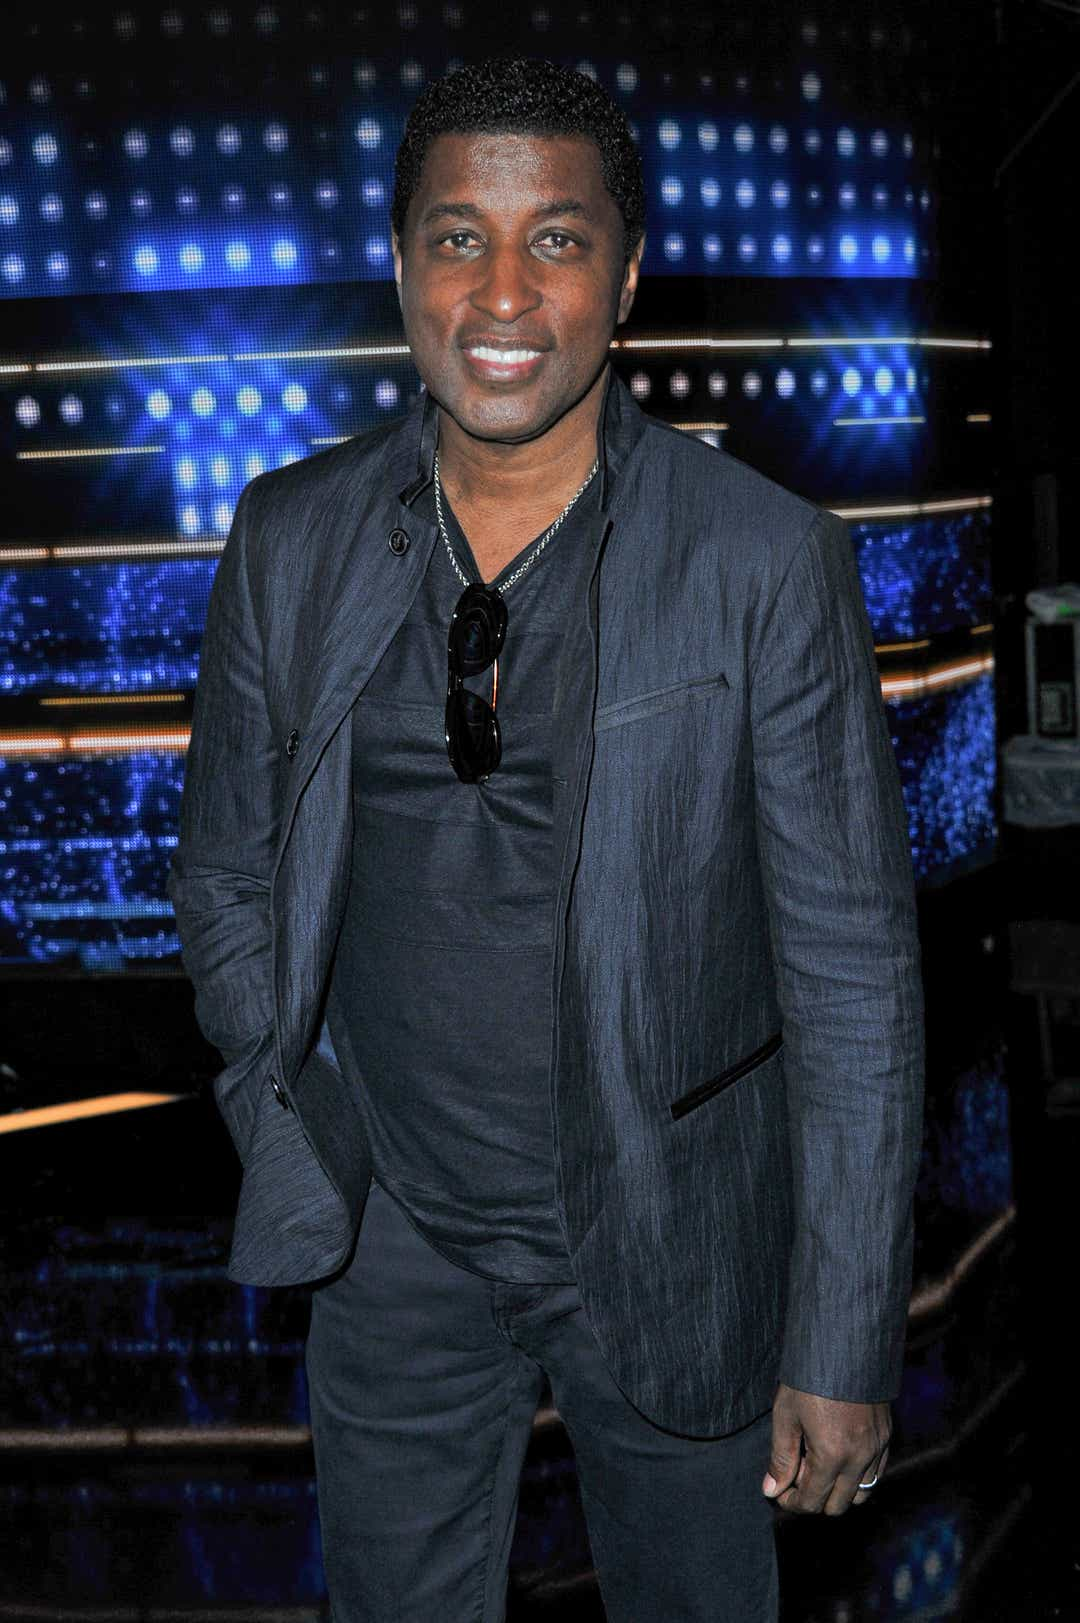 Babyface reveals coronavirus battle on his 62nd birthday: 'It's an incredibly scary thing' 1